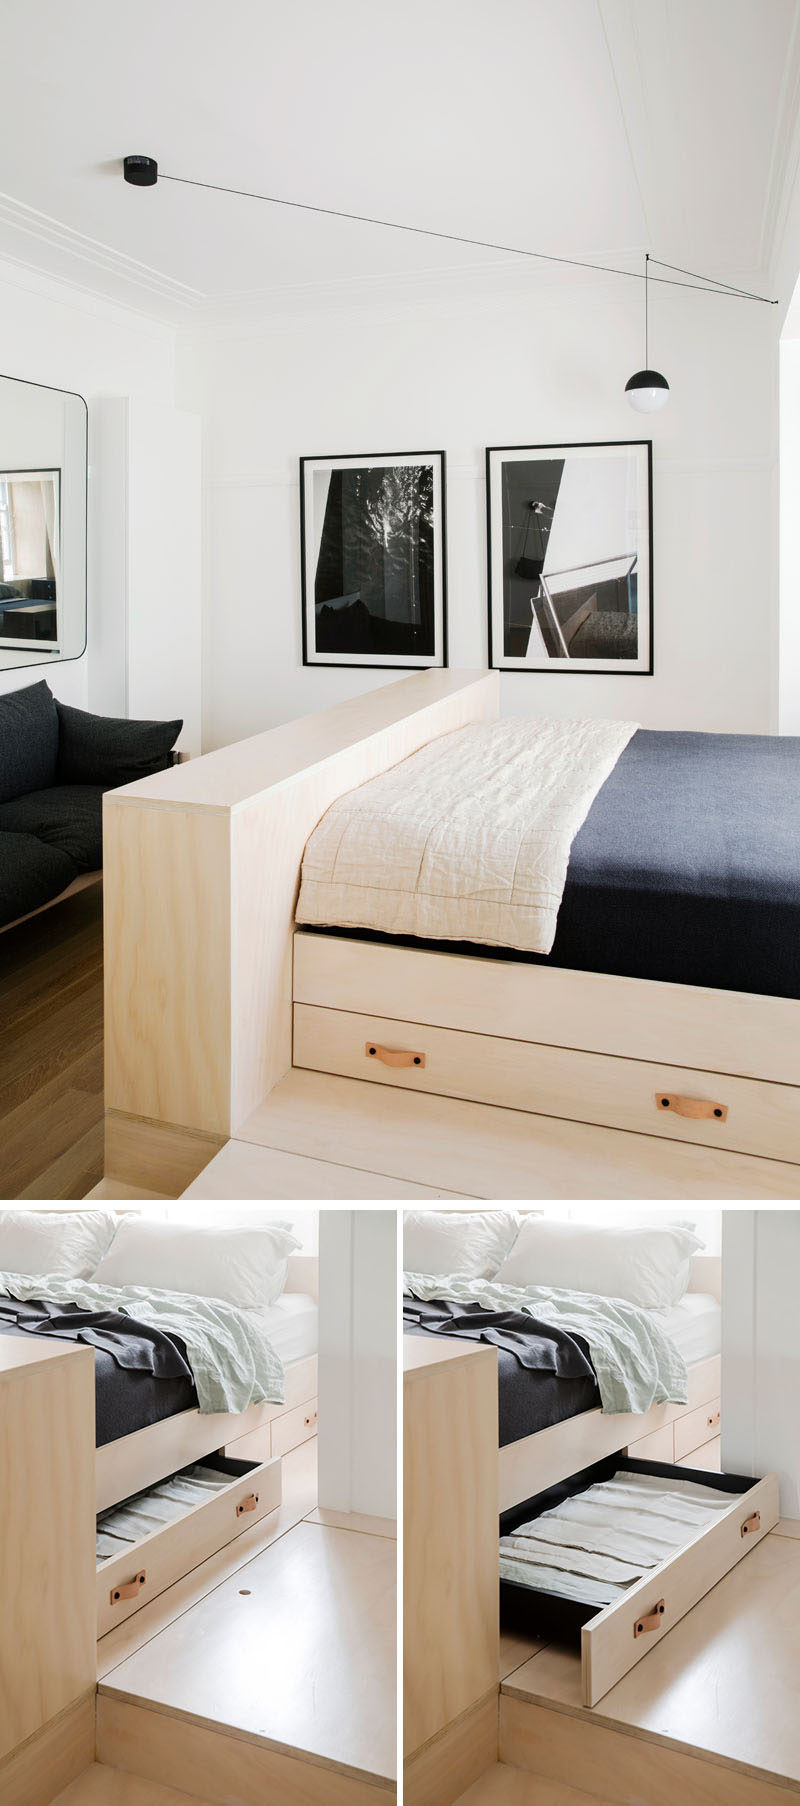 Under this modern bed platform, there are multiple pull-out drawers for housing additional bedding and pillows.